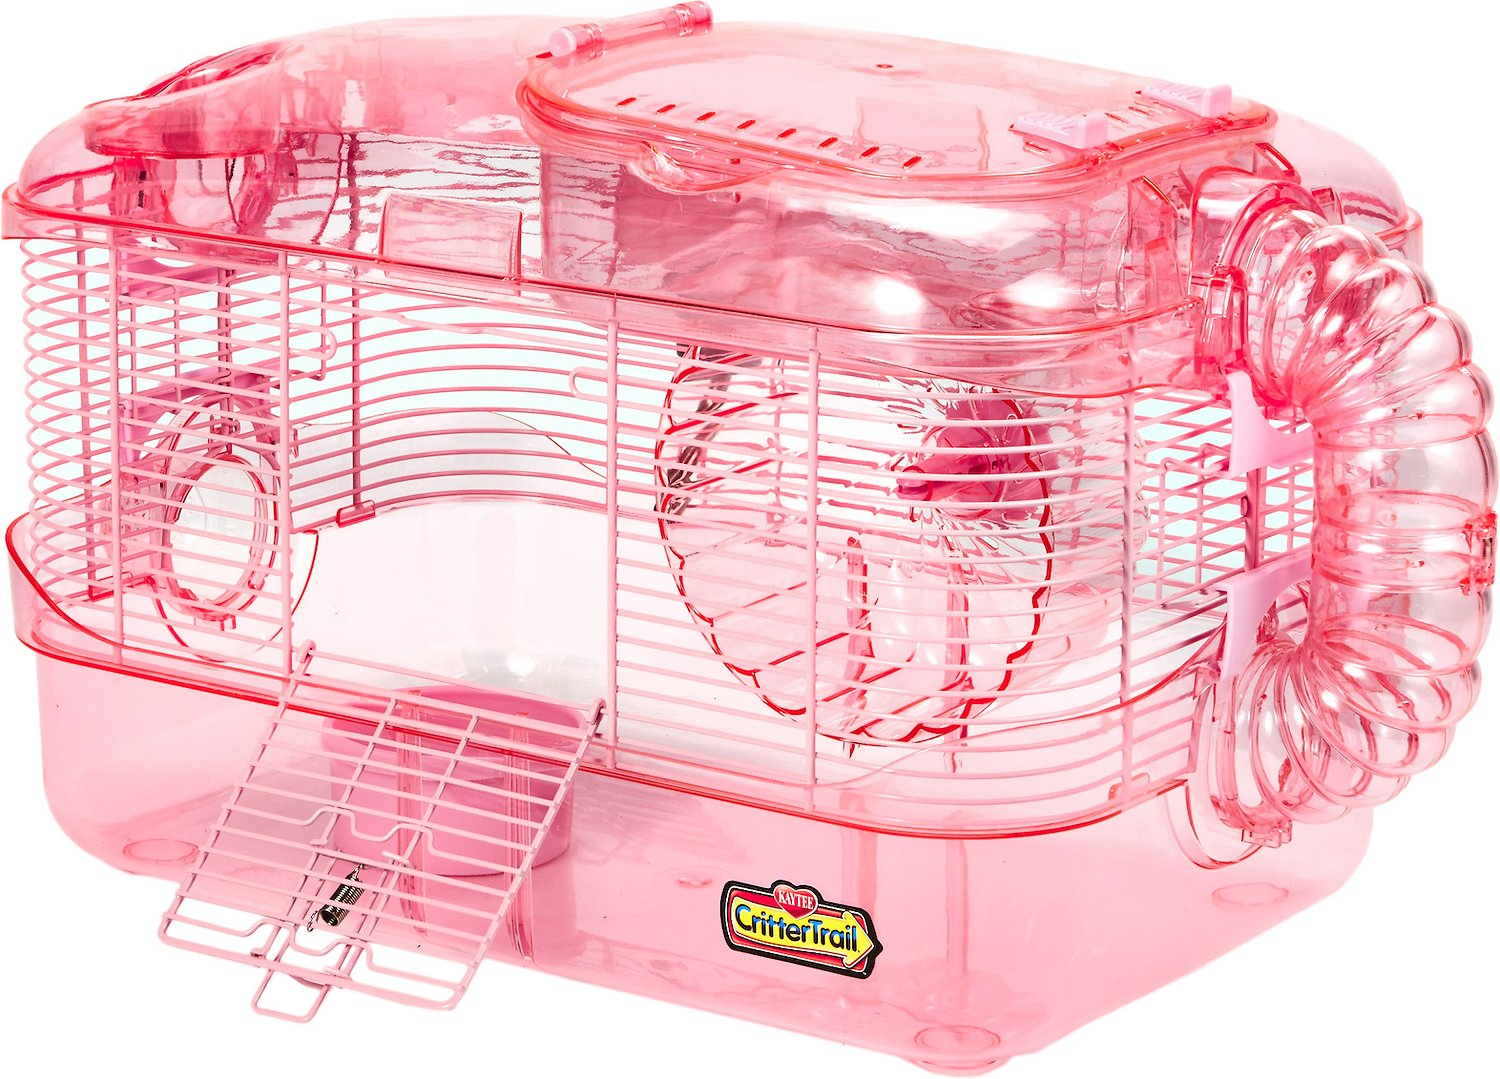 Kaytee CritterTrail One Level Habitat Small Animal Edition, Pink Image